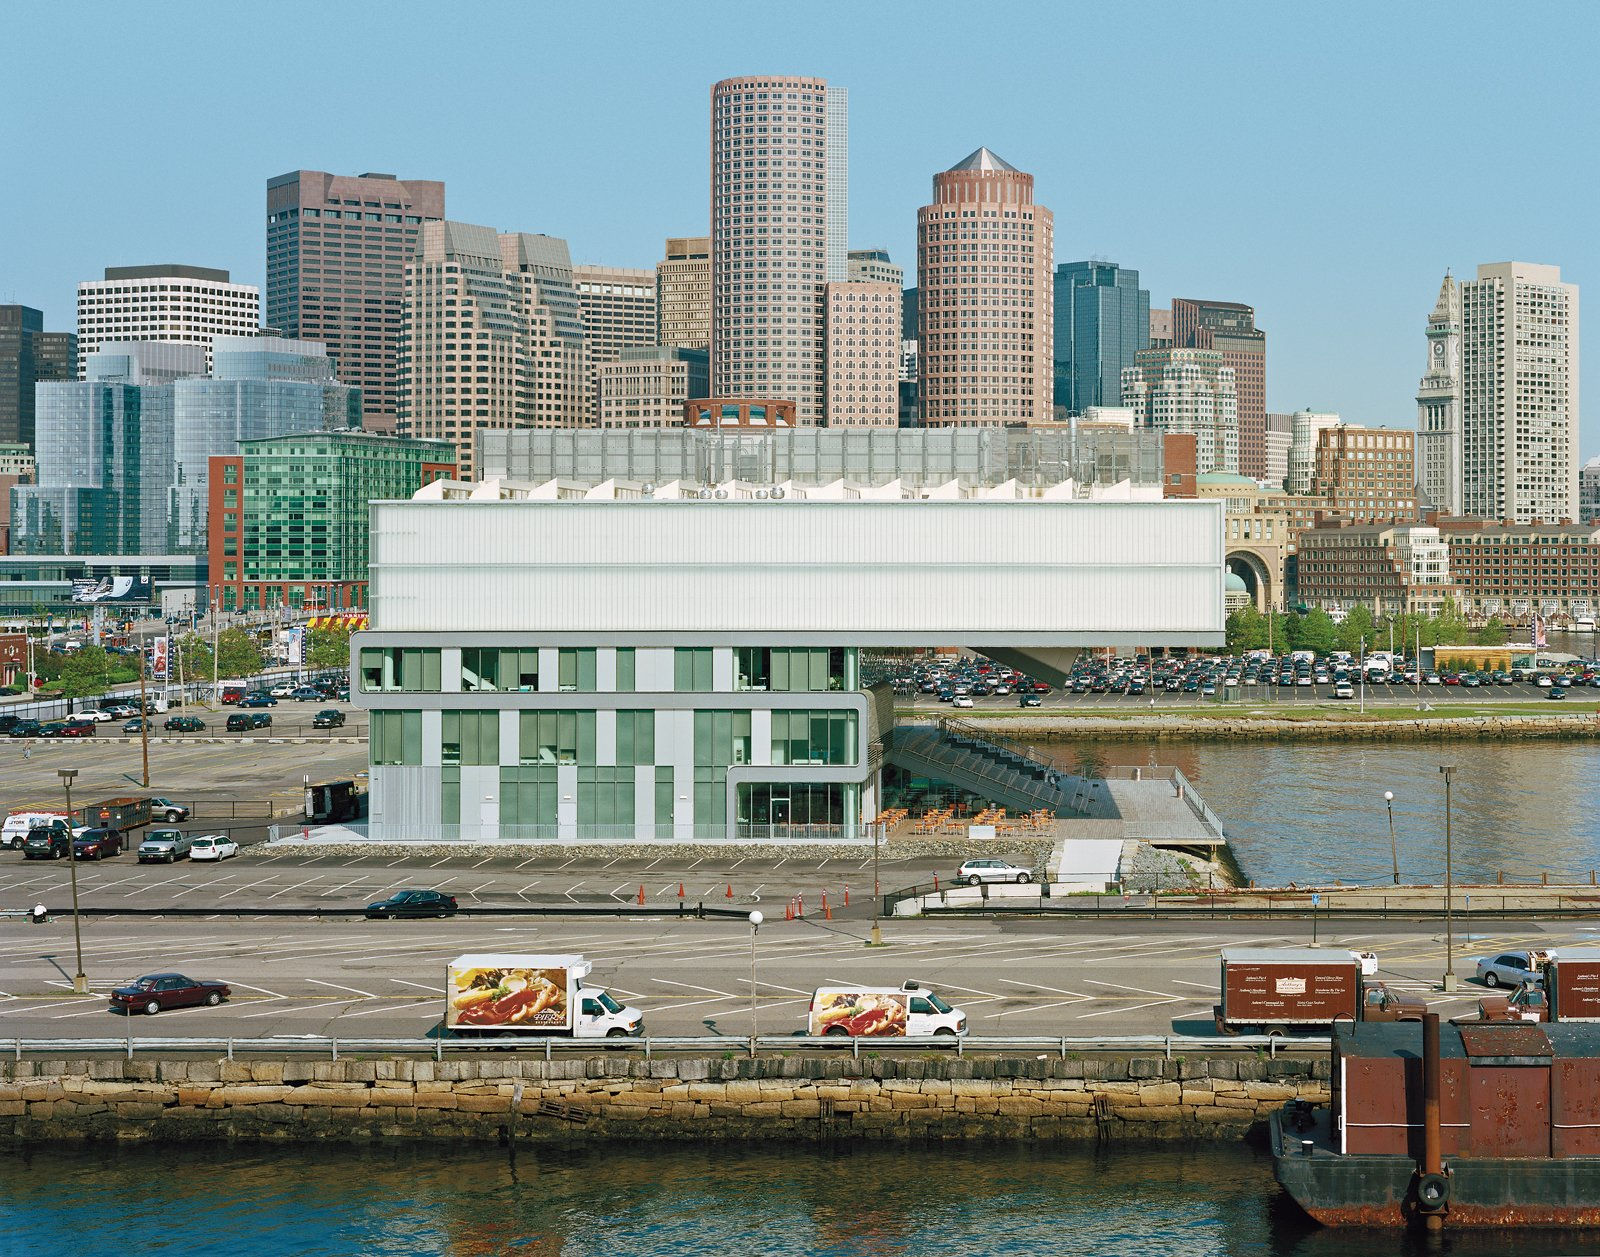 The Institute of Contemporary Art, designed by Diller Scofidio + Renfro, sits harborside, backed by the financial titans of the city skyline. The surrounding parking lots will disappear as the district is developed in the coming years.  Photo 1 of 12 in Boston Pops